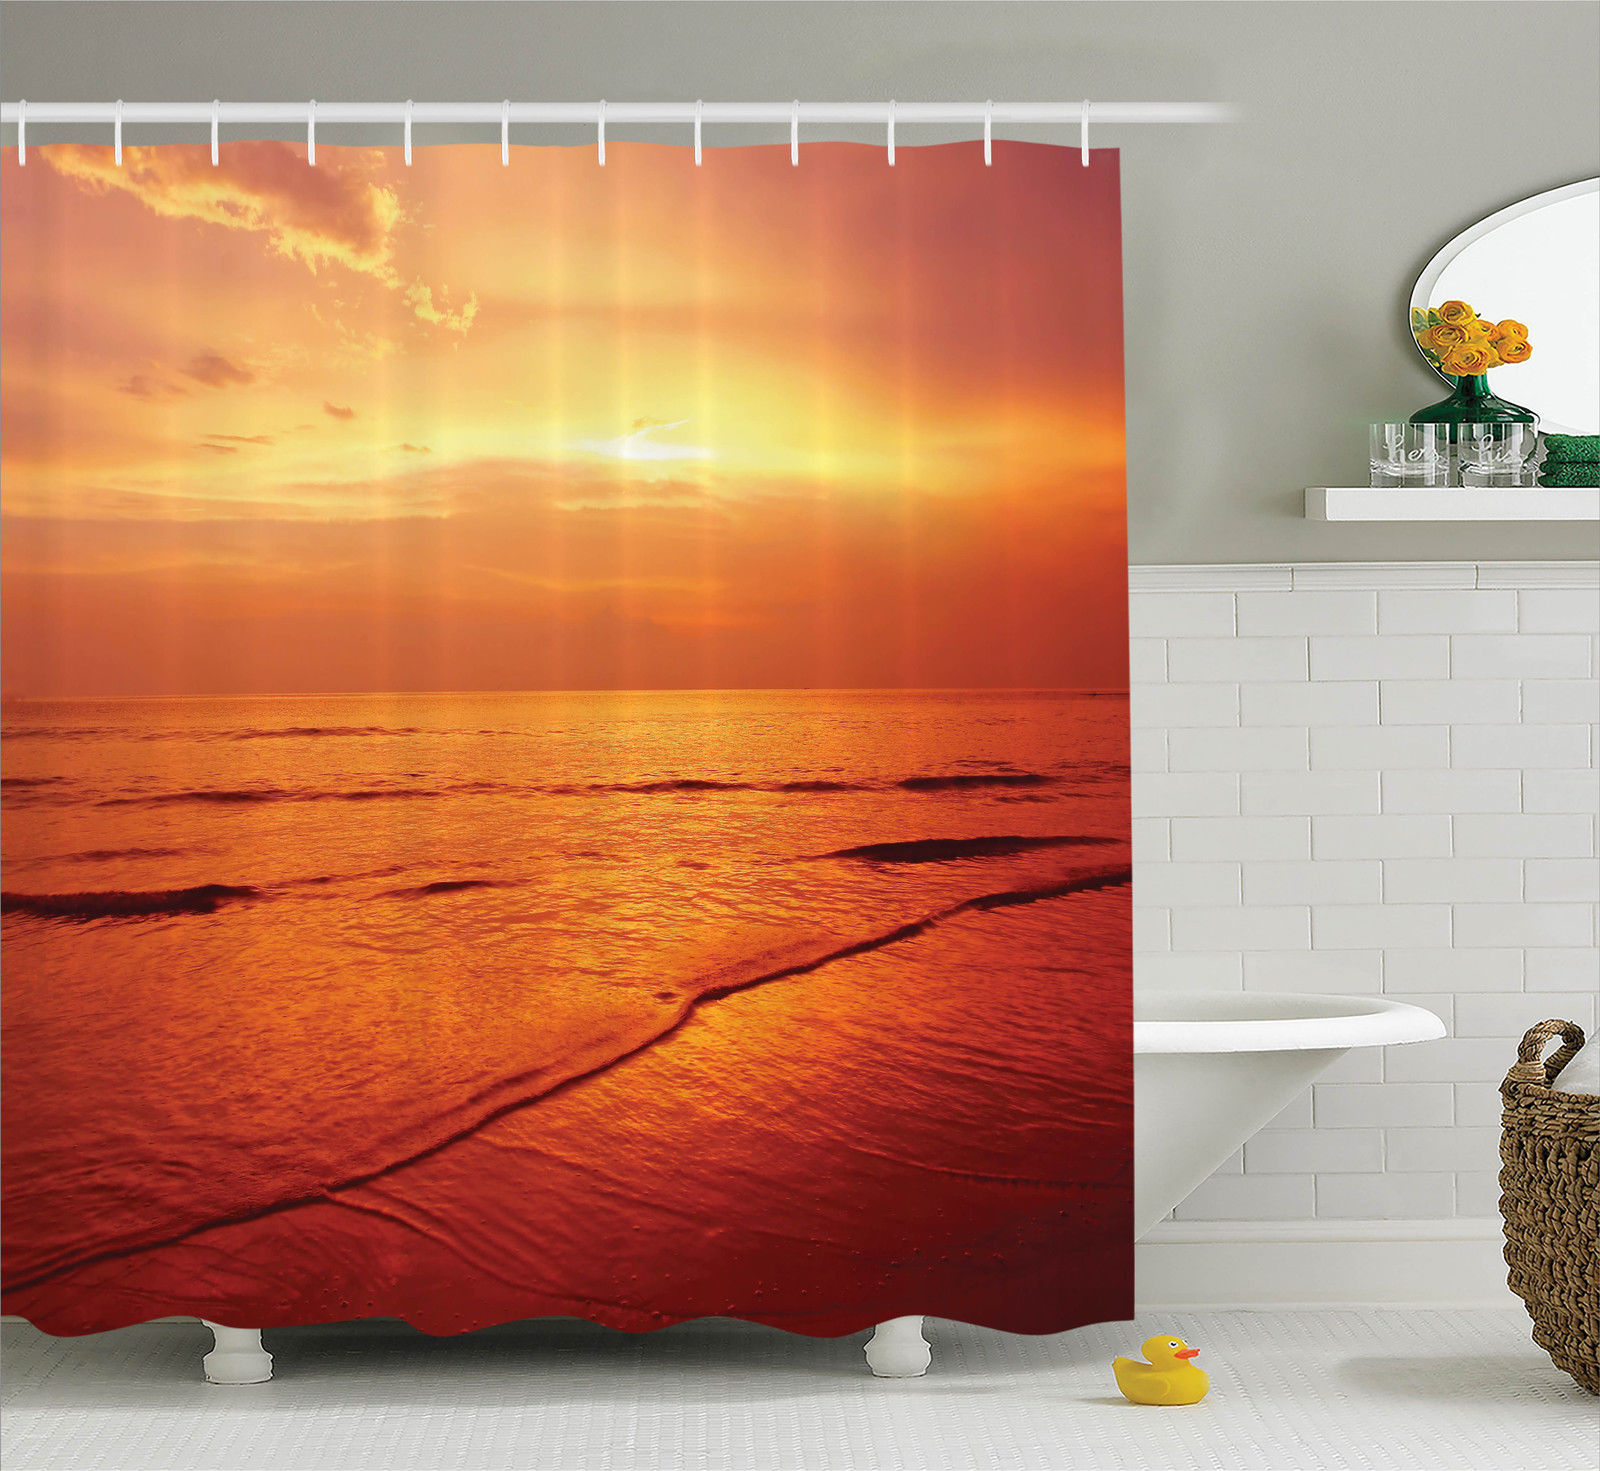 Ocean Decor Shower Curtain Set, Twilight Seascape At Karon Beach Thailand Exotic Vacation Getaway Destination Picture, Bathroom Accessories, 69W X 70L Inches, By Ambesonne